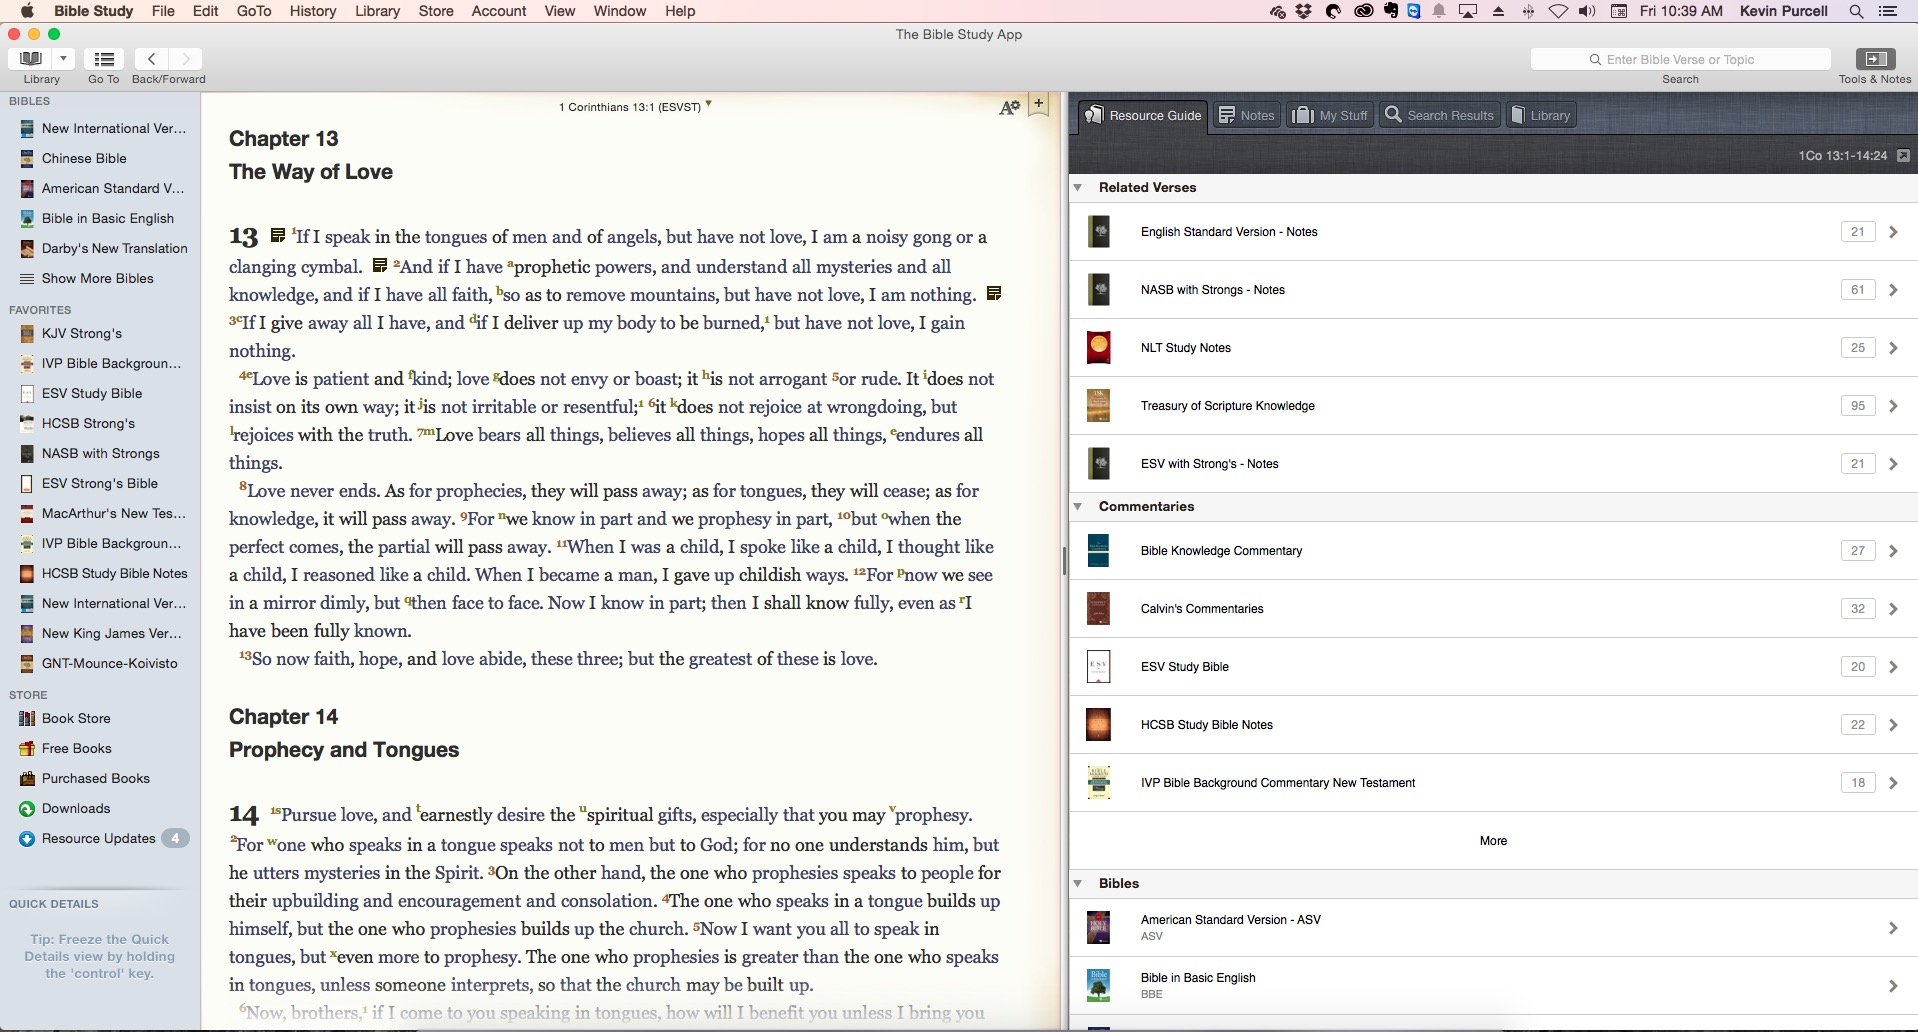 olive tree bible app user guide